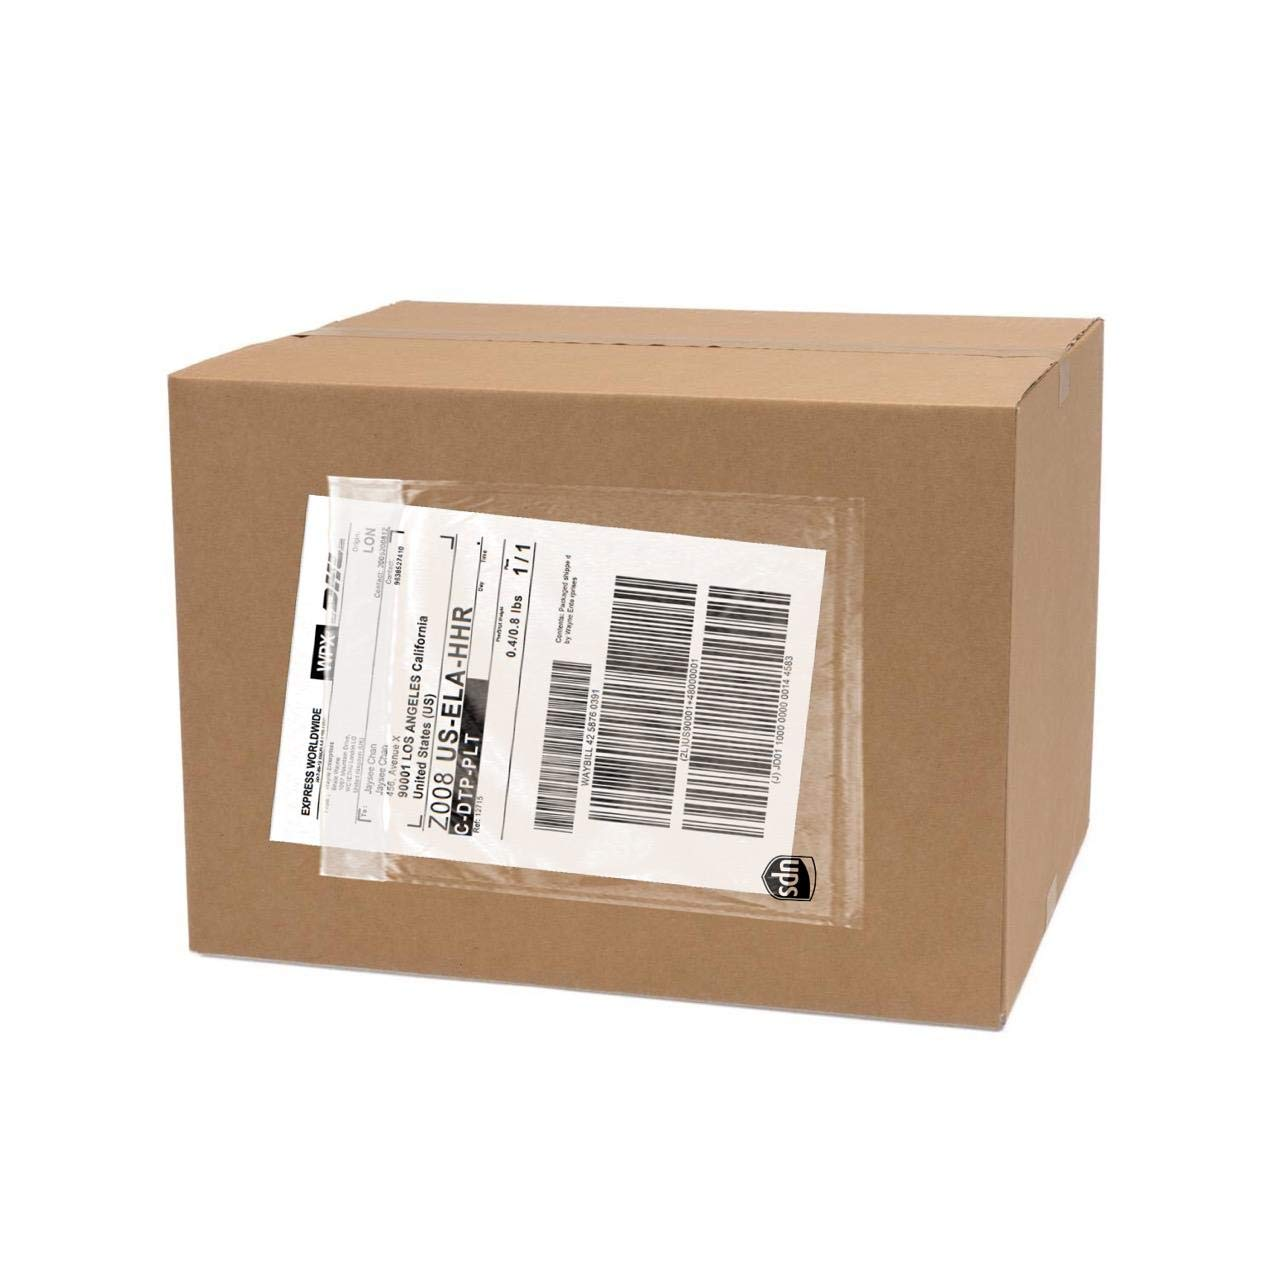 500 Pack UPS Label Pouches 6.5'' x 10''| Packing List Envelope | Commercial Grade UPS Pouches | Shipping Label Pouches | Mailing Pouches | UPS Pouches | UPS Label Pouch | Labels for Storage Bins by All Shipping Supplies Inc.